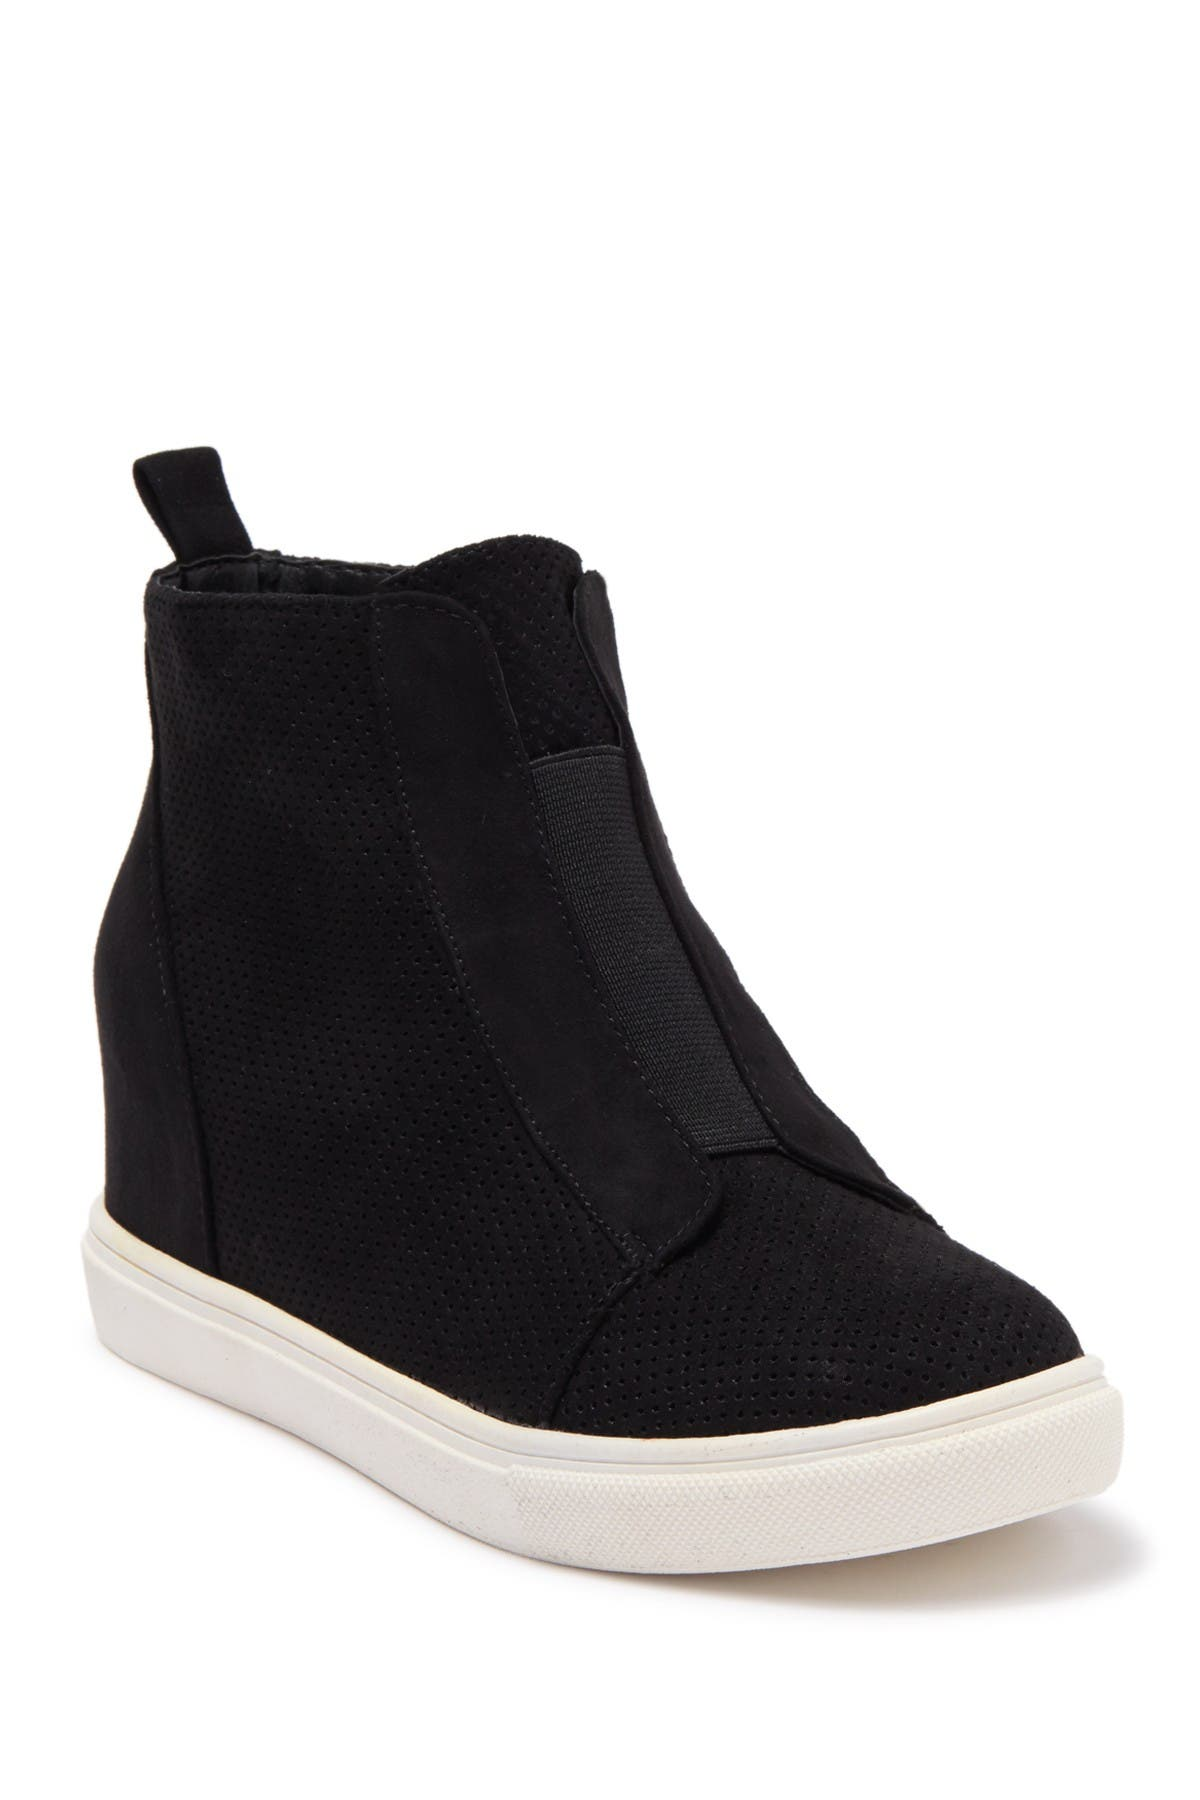 Image of Madden Girl Perry Wedge Sneaker